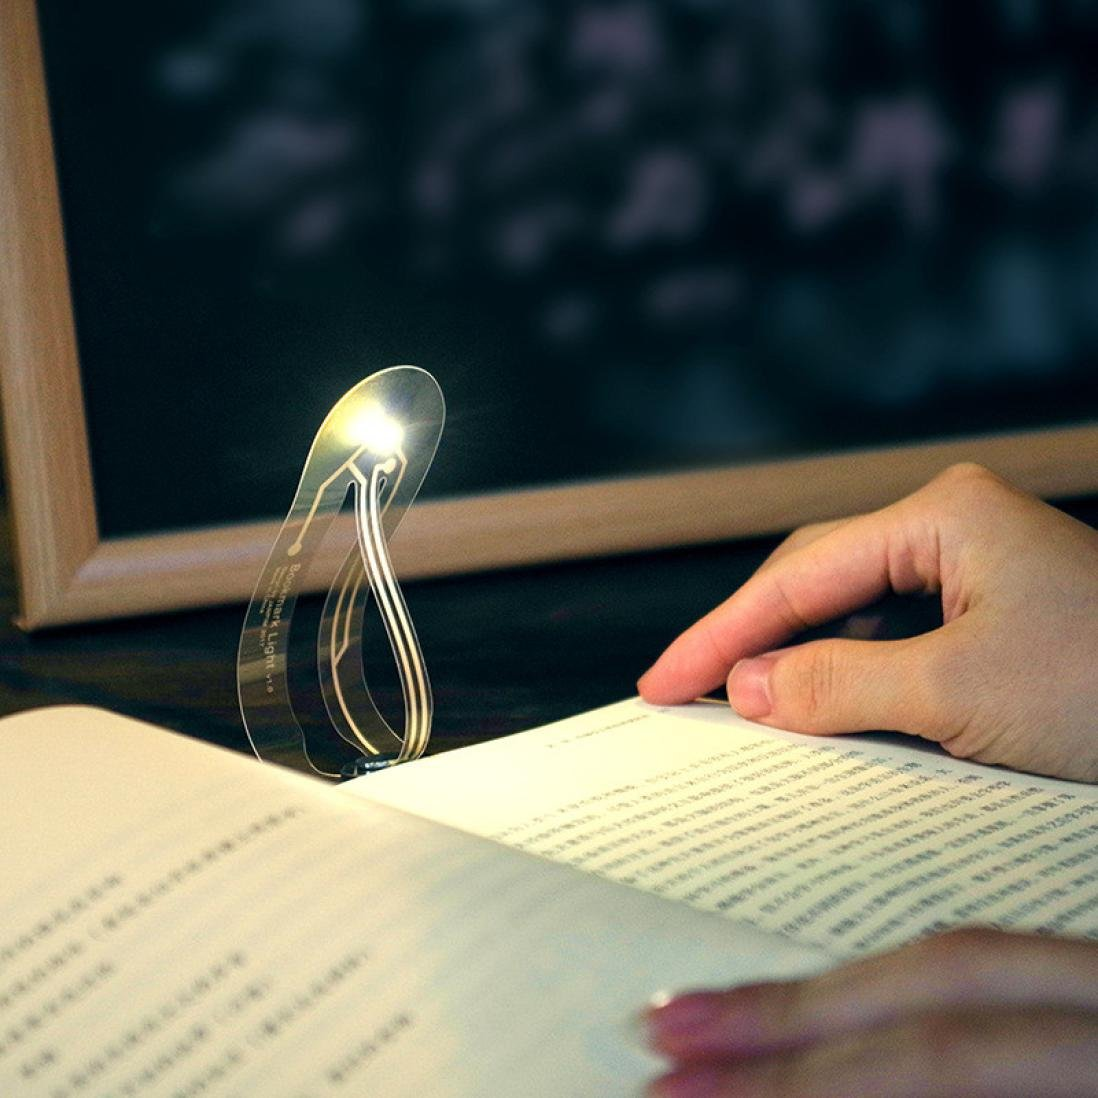 TAOtTAO Creative Mini Portable Bookmark Lights LED Portable Books Eye Reading Light